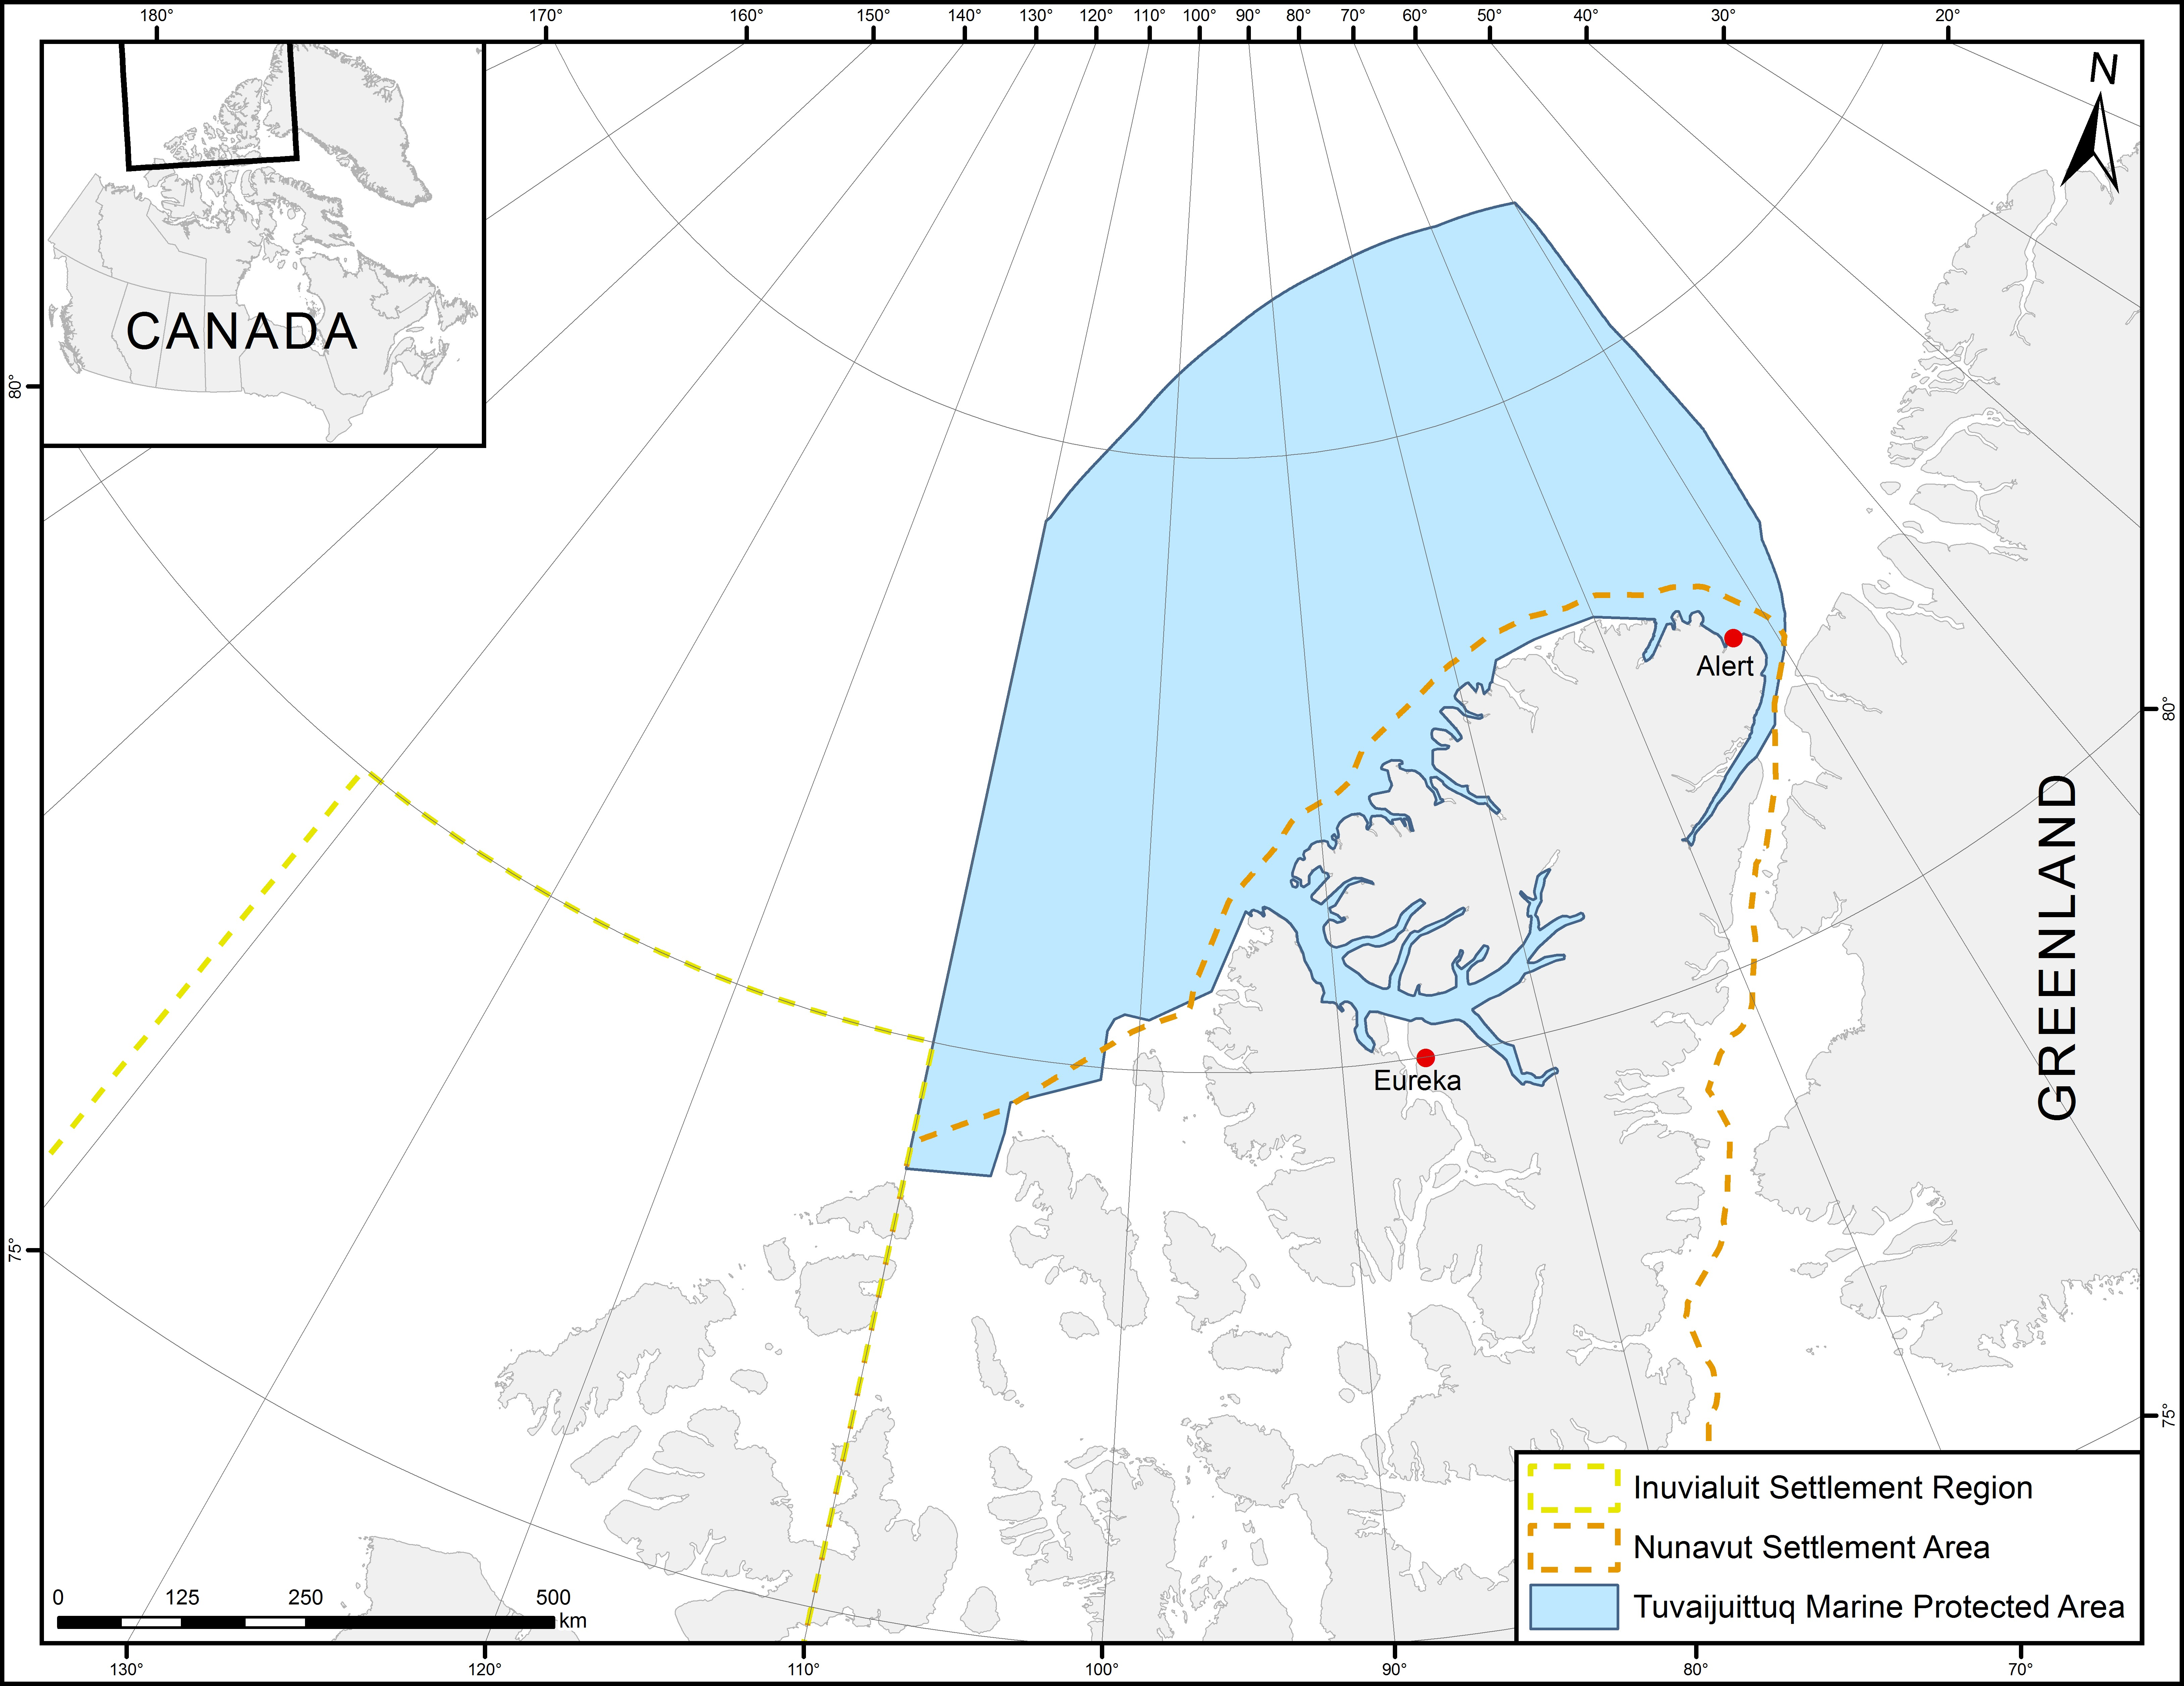 Figure 1. Map of the Tuvaijuittuq Marine Protected Area